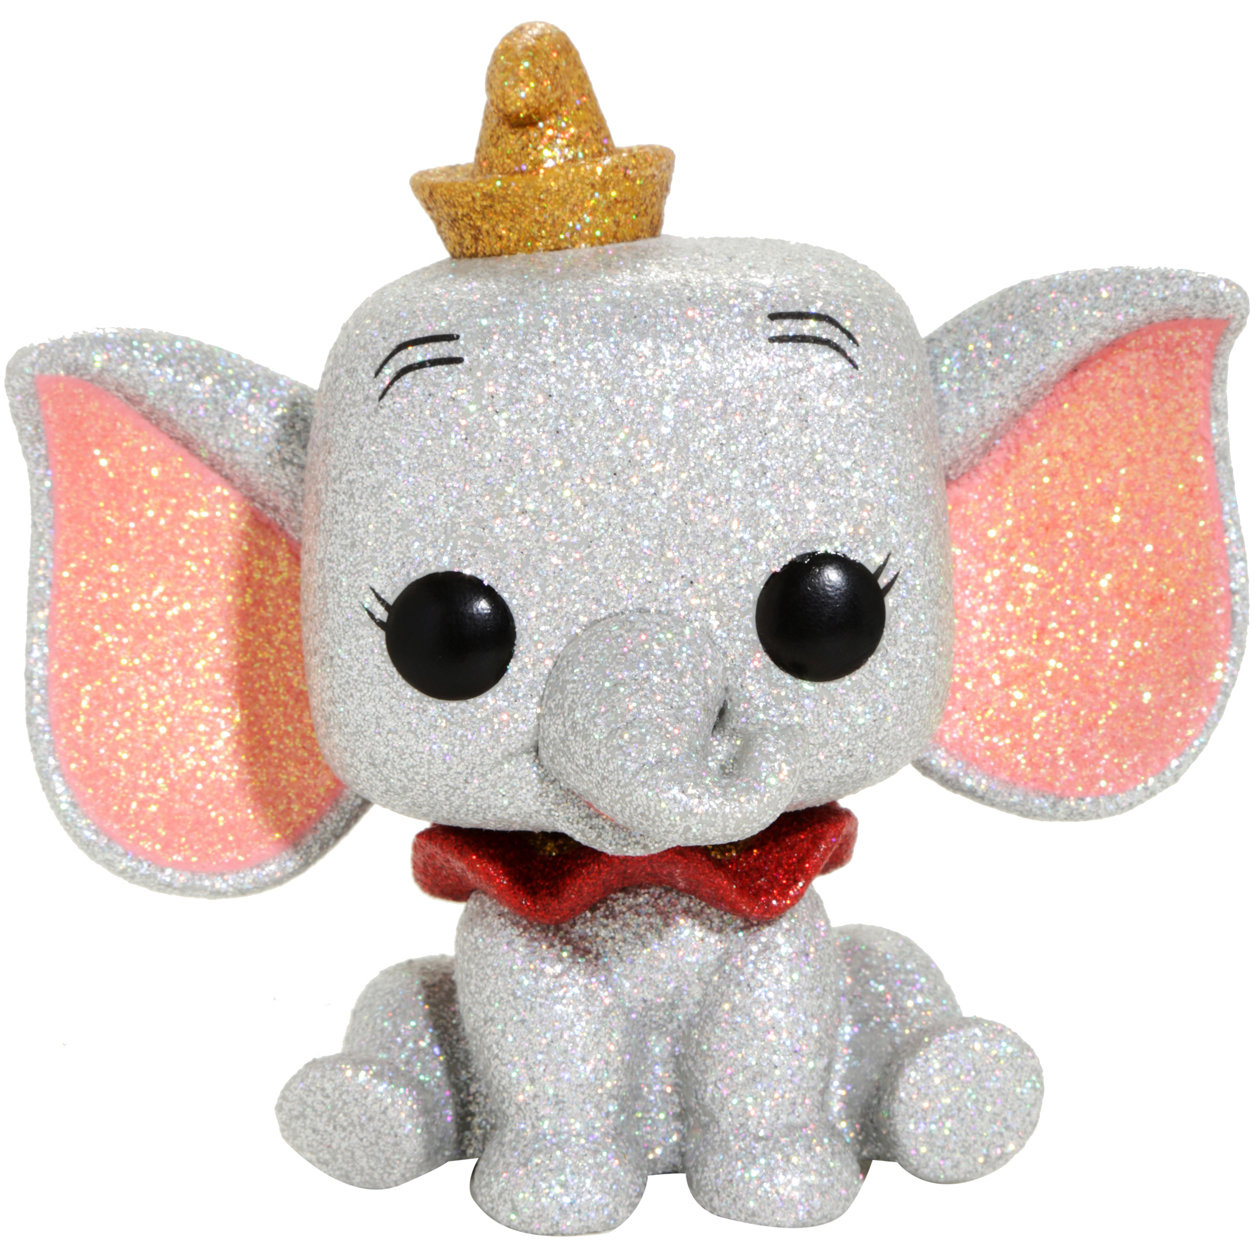 Funko Pop! Disney Dumbo (Diamond)